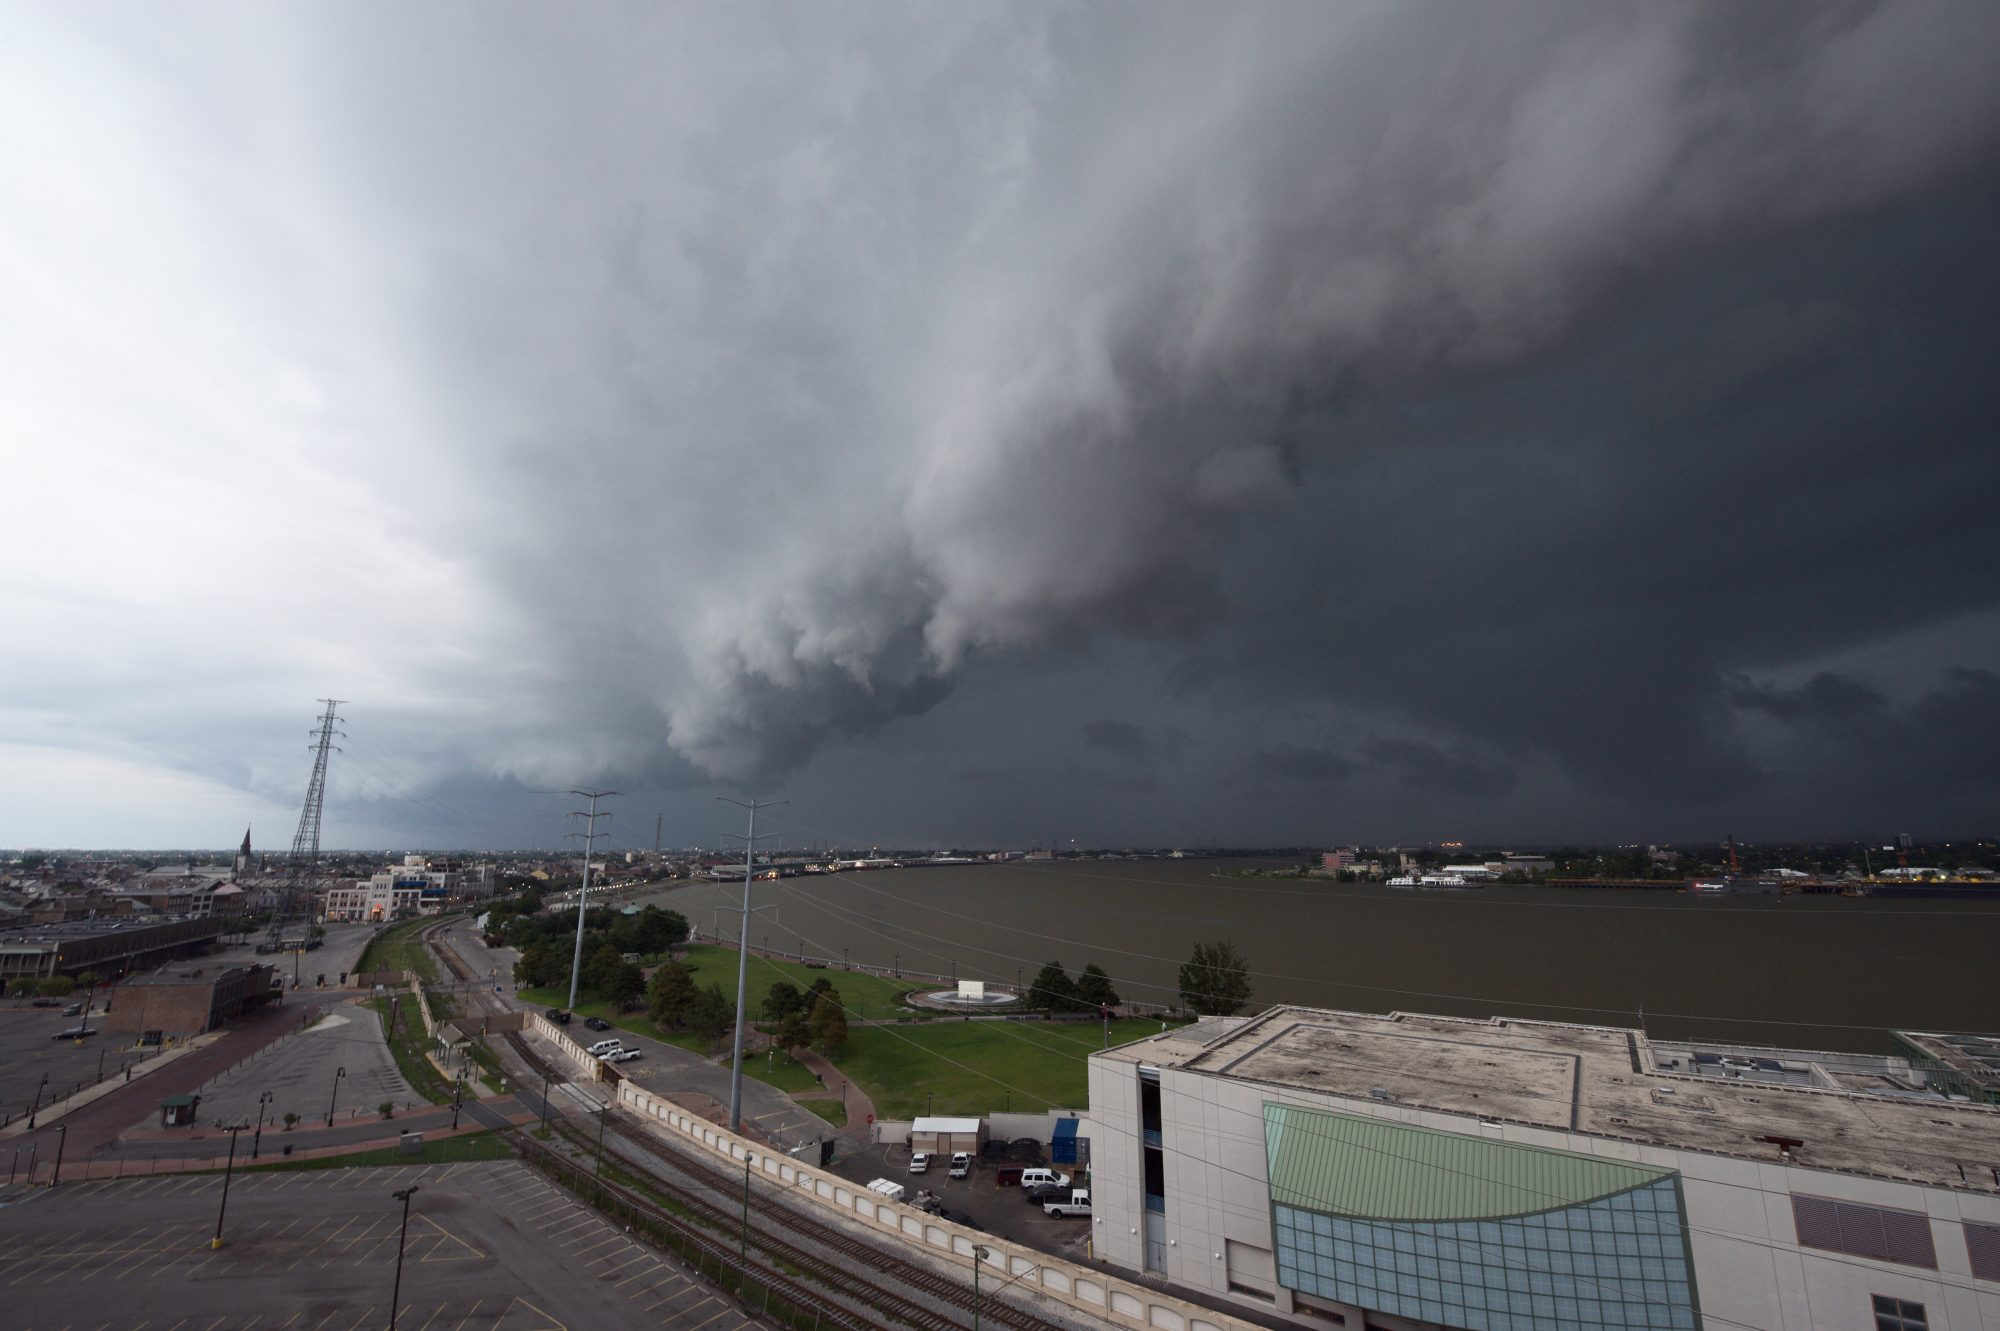 Hurricane Gustav hit the Louisiana coast as a Category 2 hurricane on September 1, 2008. It moved westward through Louisiana and inland, damaging New Orleans but sparing the city a repeat of the catastrophe caused by Katrina, three years earlier. Cost: $4.6 billion